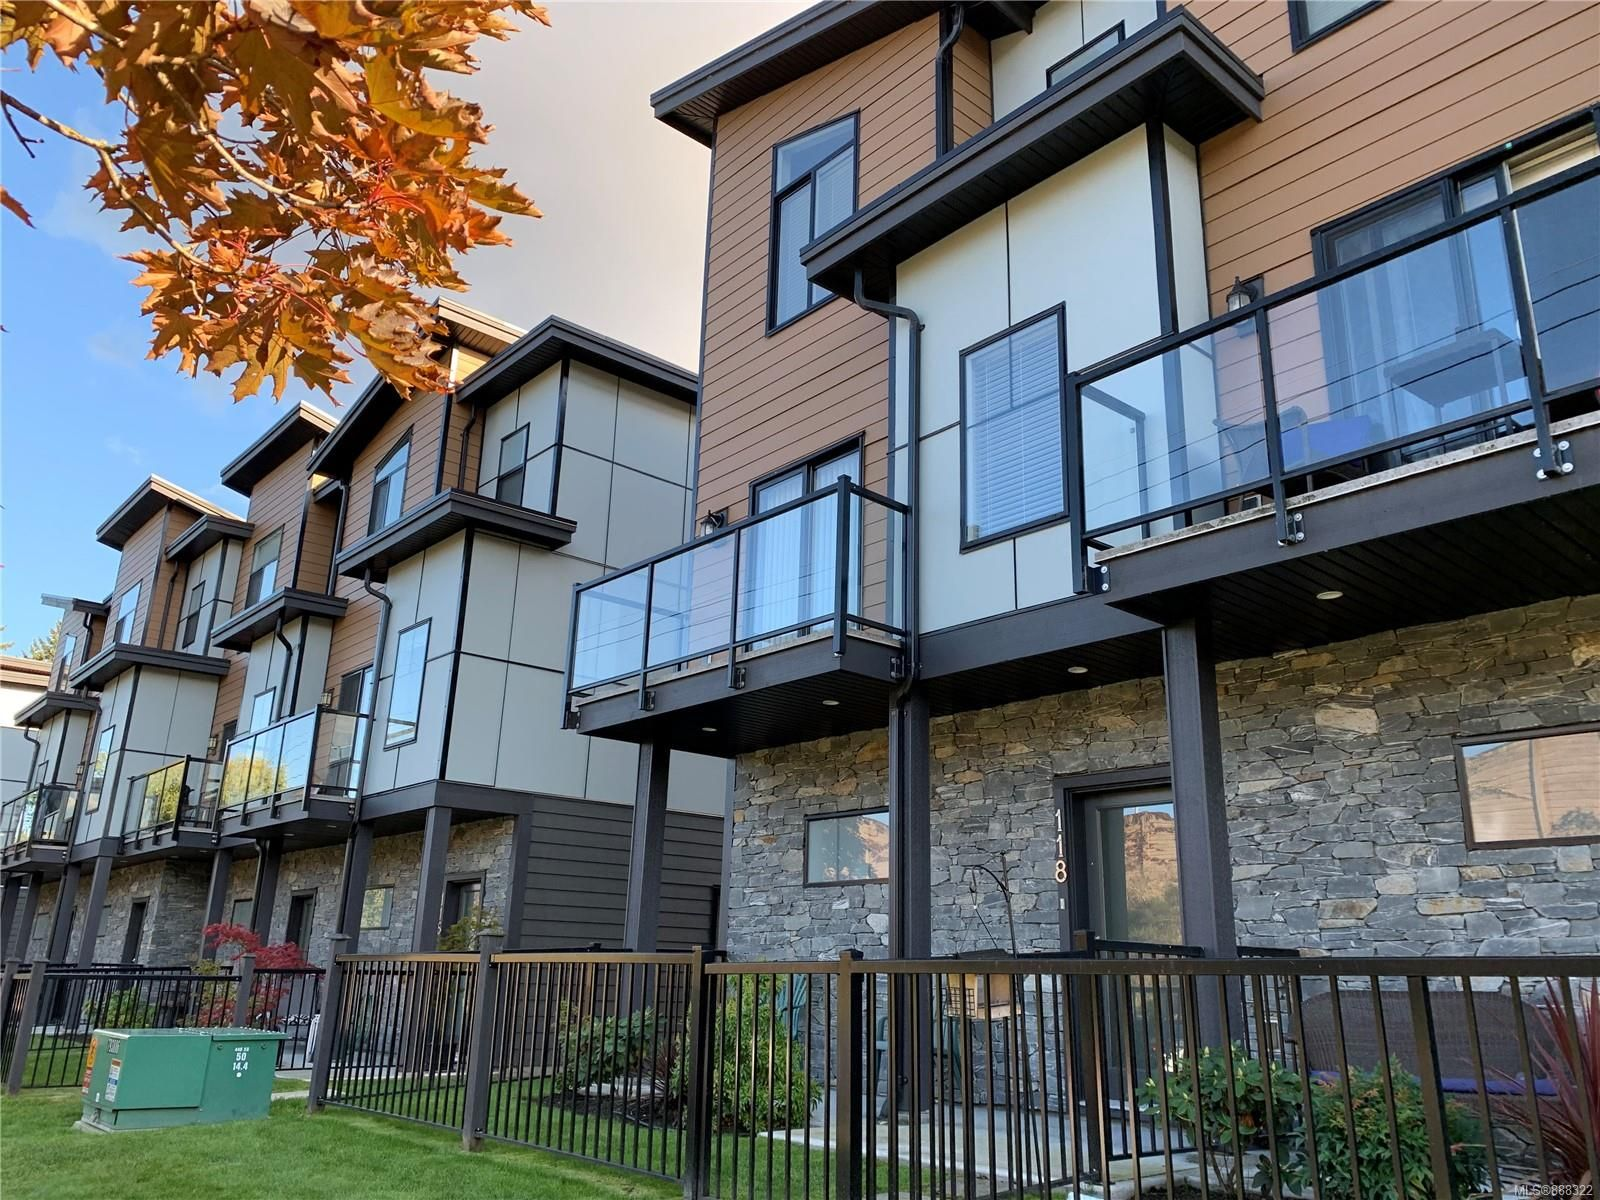 Main Photo: 118 687 Strandlund Ave in Langford: La Langford Proper Row/Townhouse for sale : MLS®# 888322